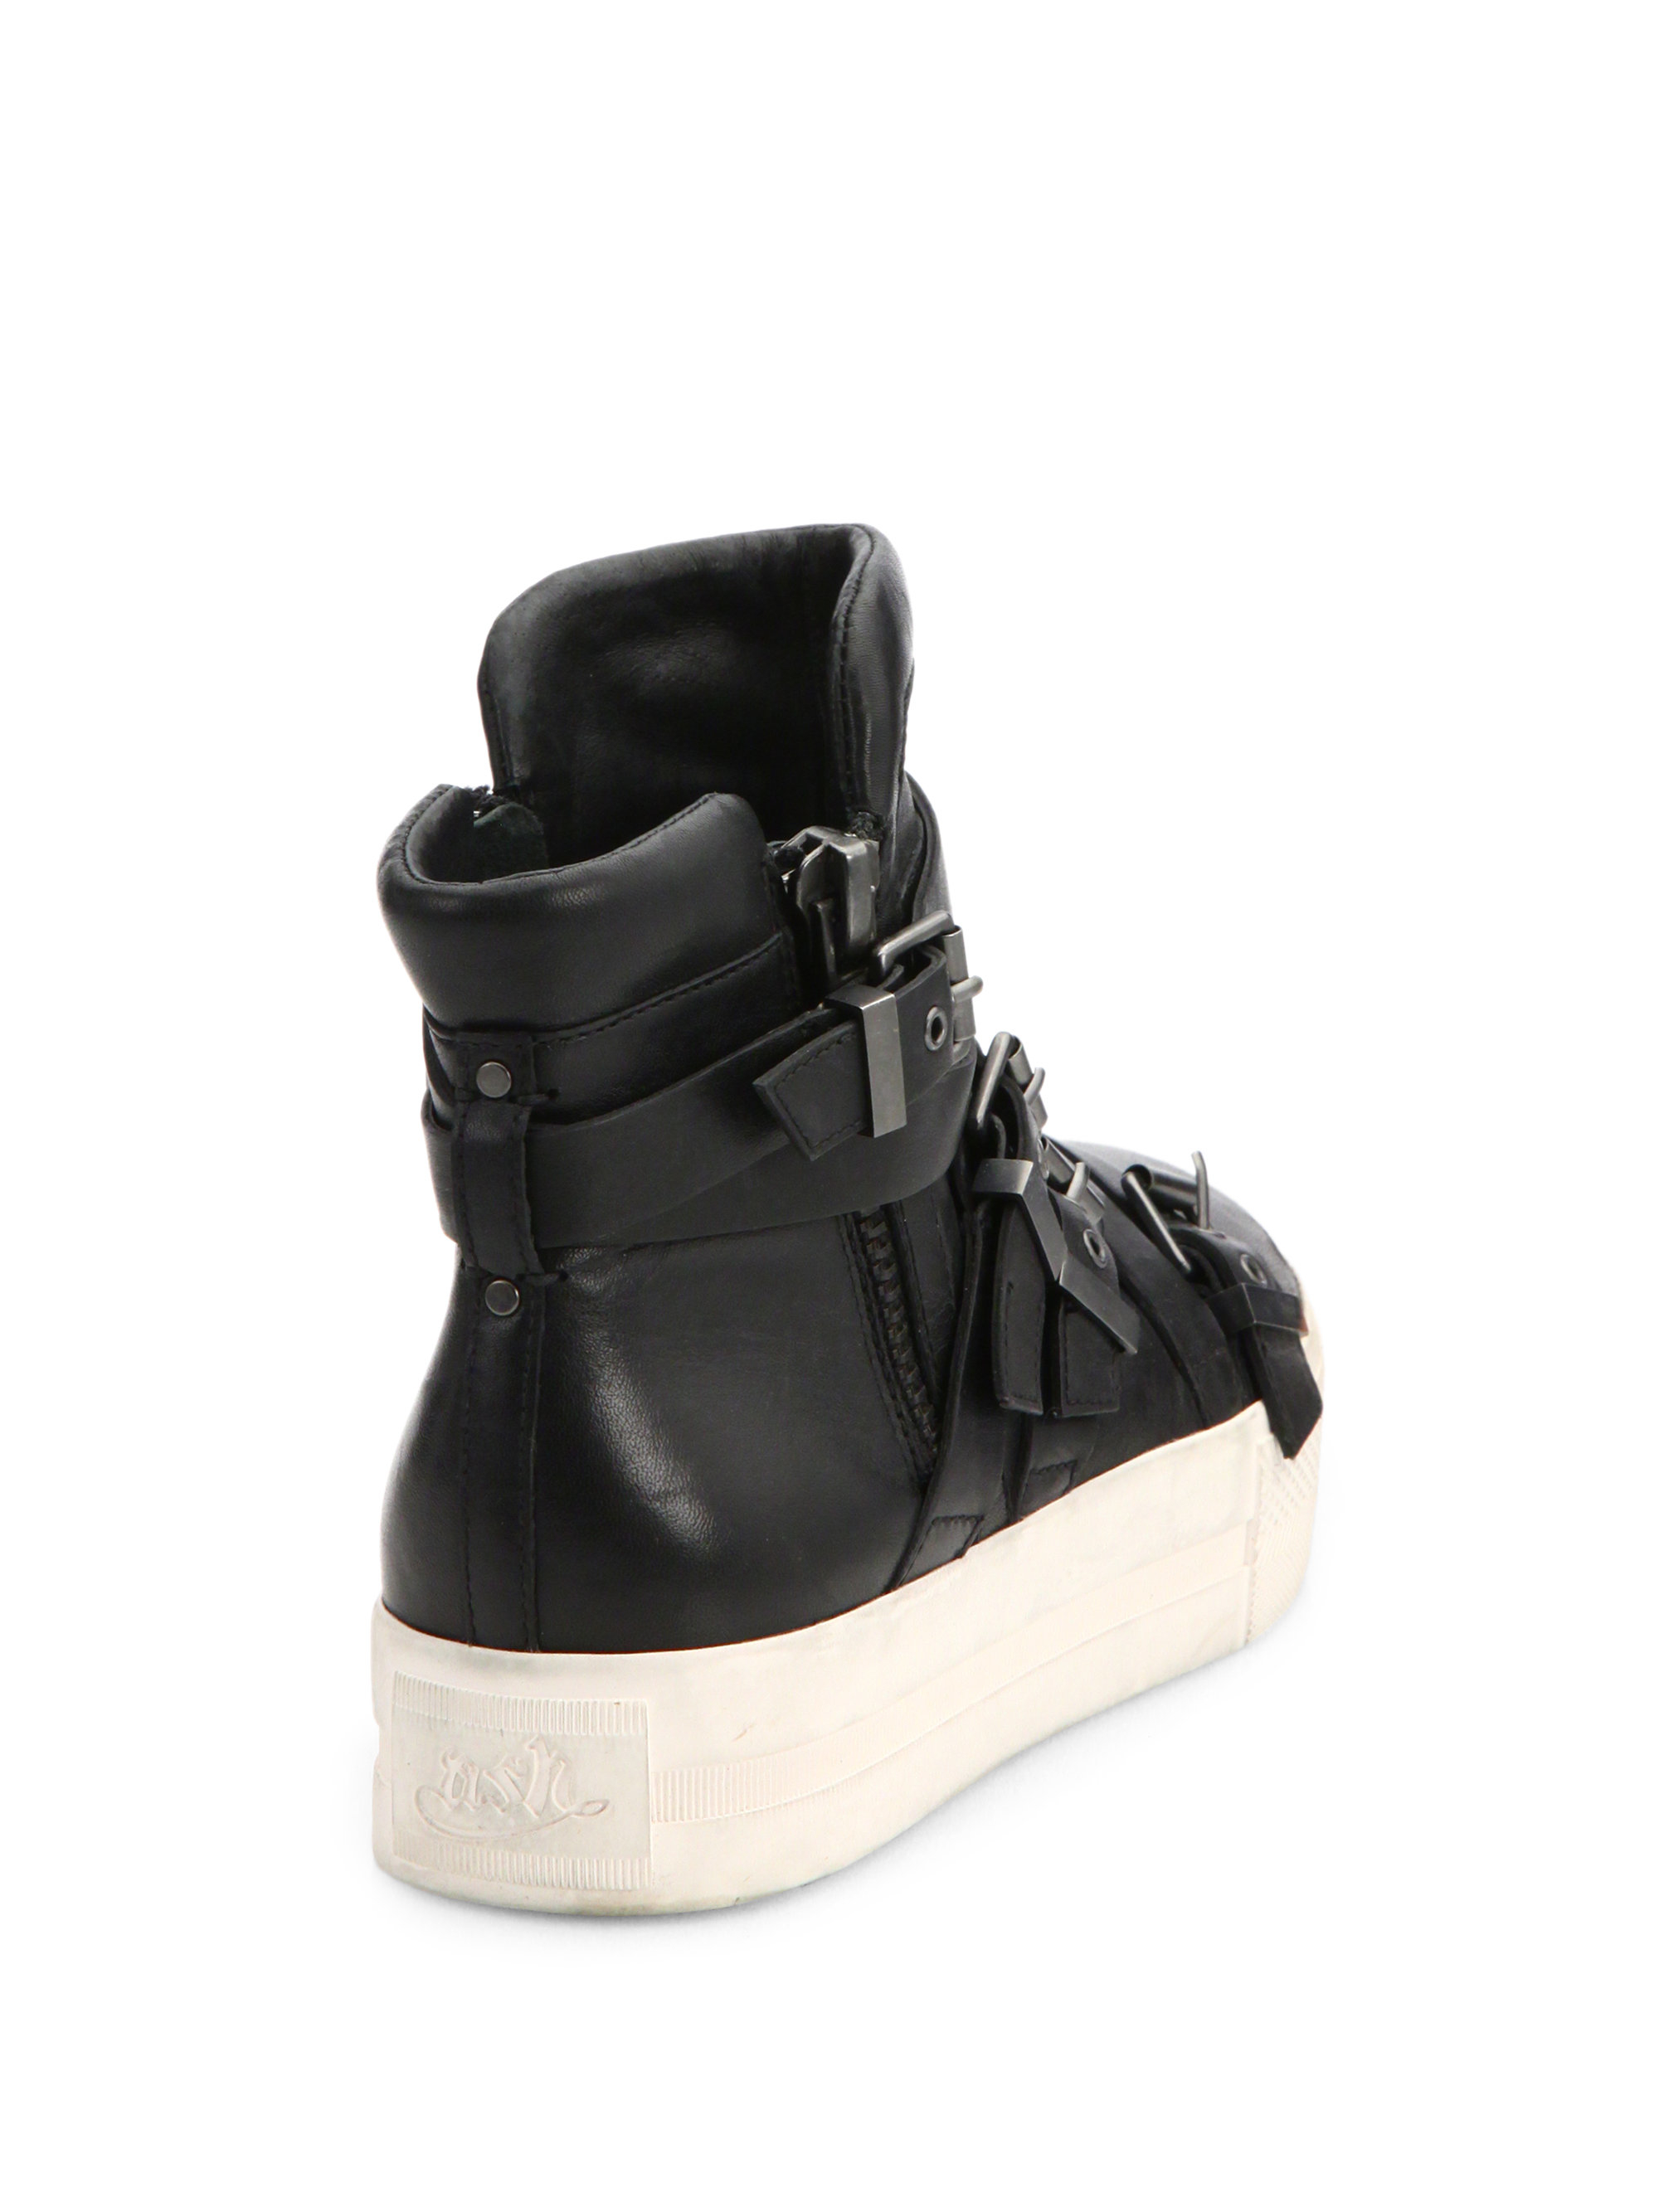 Ash Dae Leather High-top Sneakers in